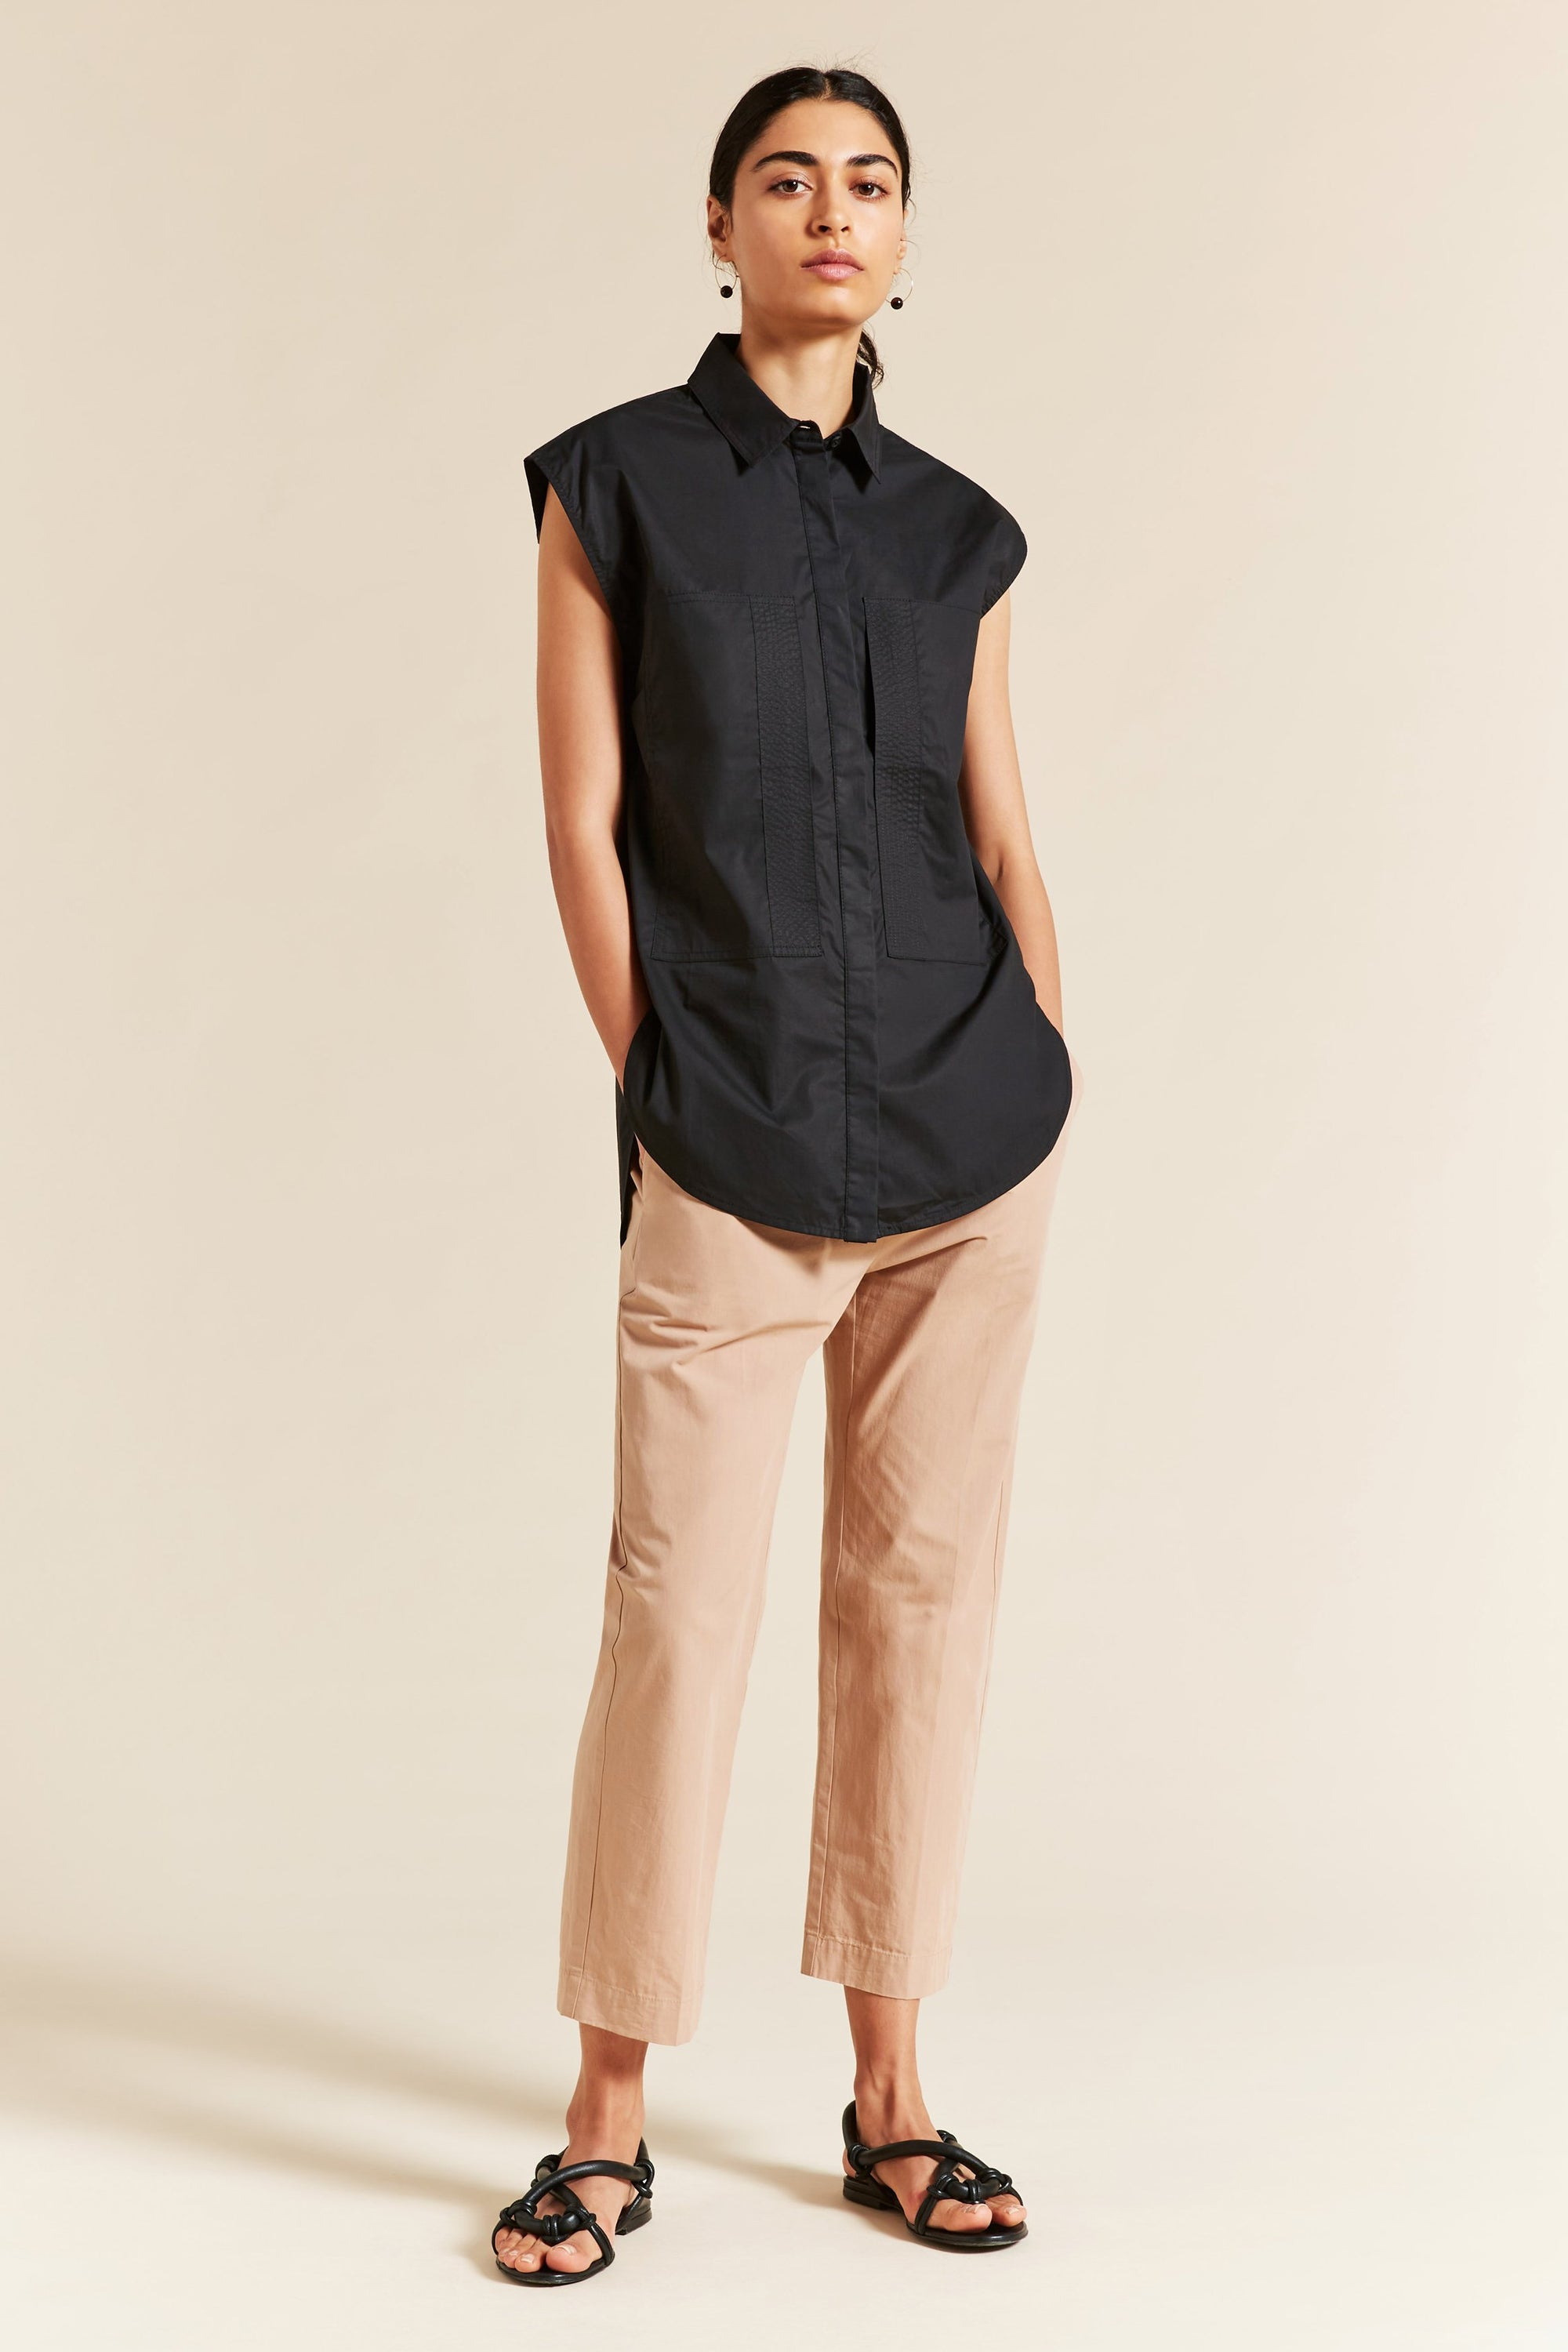 Maleo Sleeveless Shirt